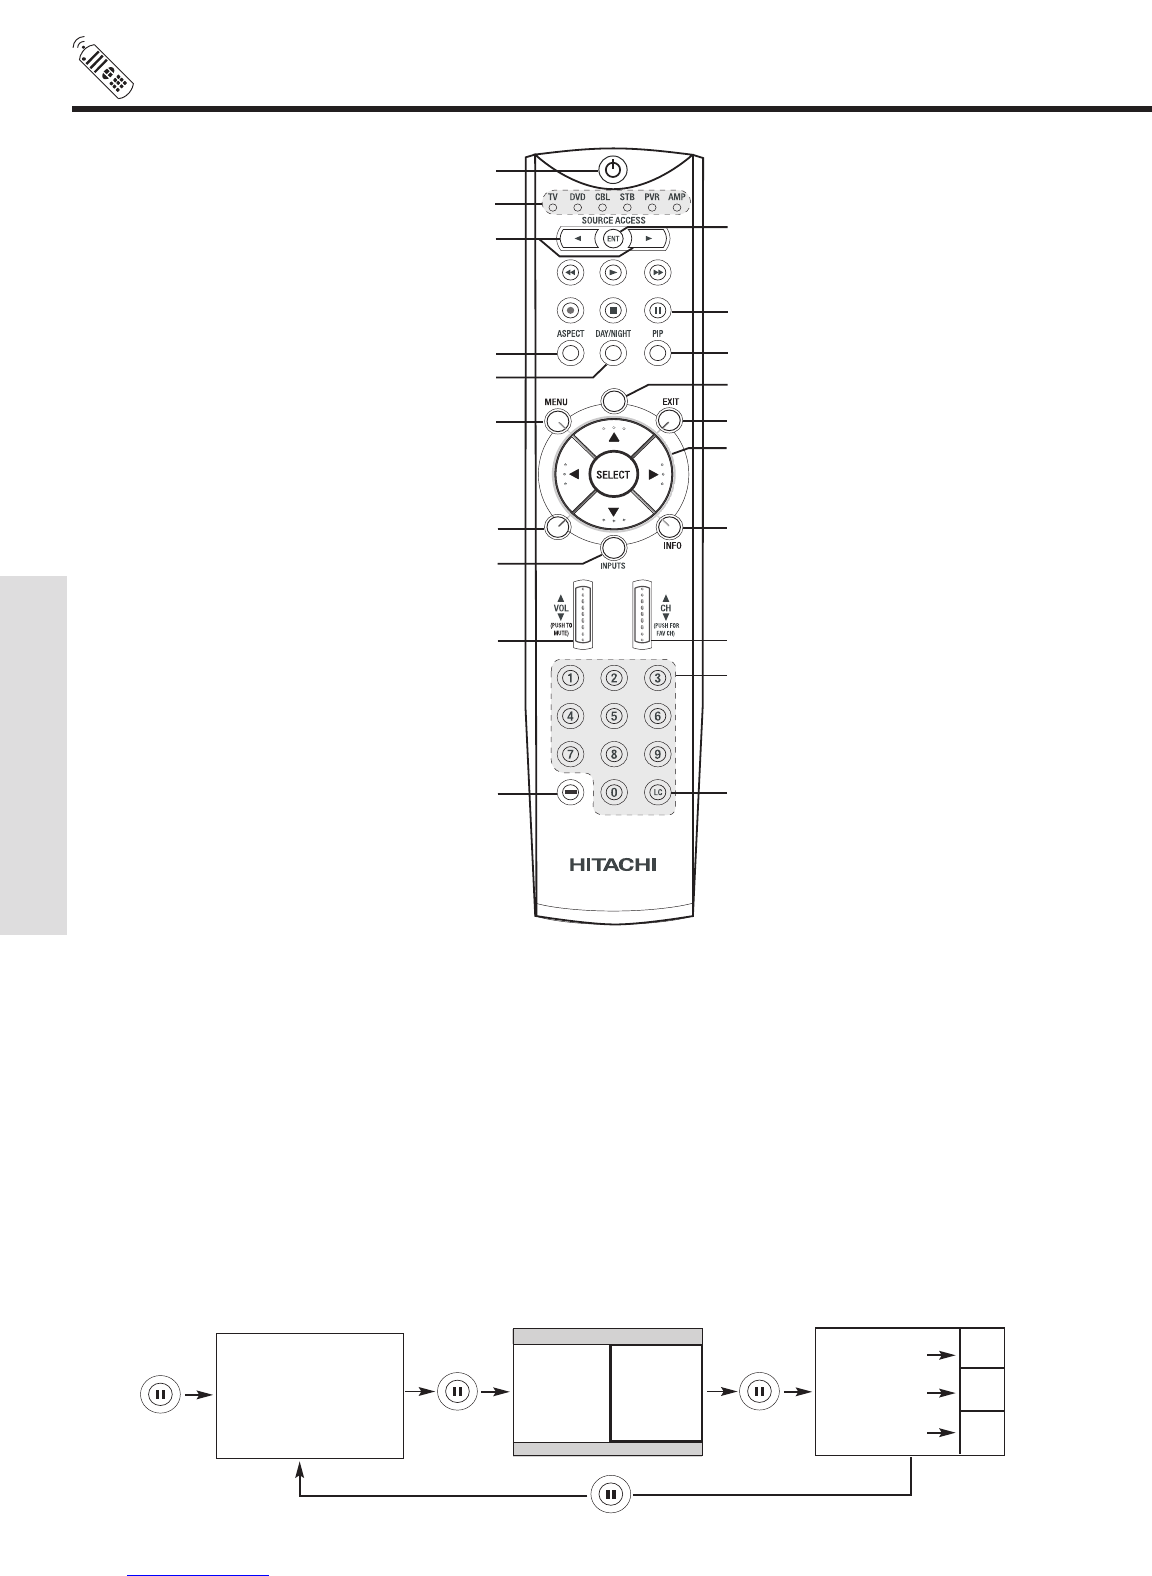 Page 22 of Hitachi Flat Panel Television 50V710 User Guide